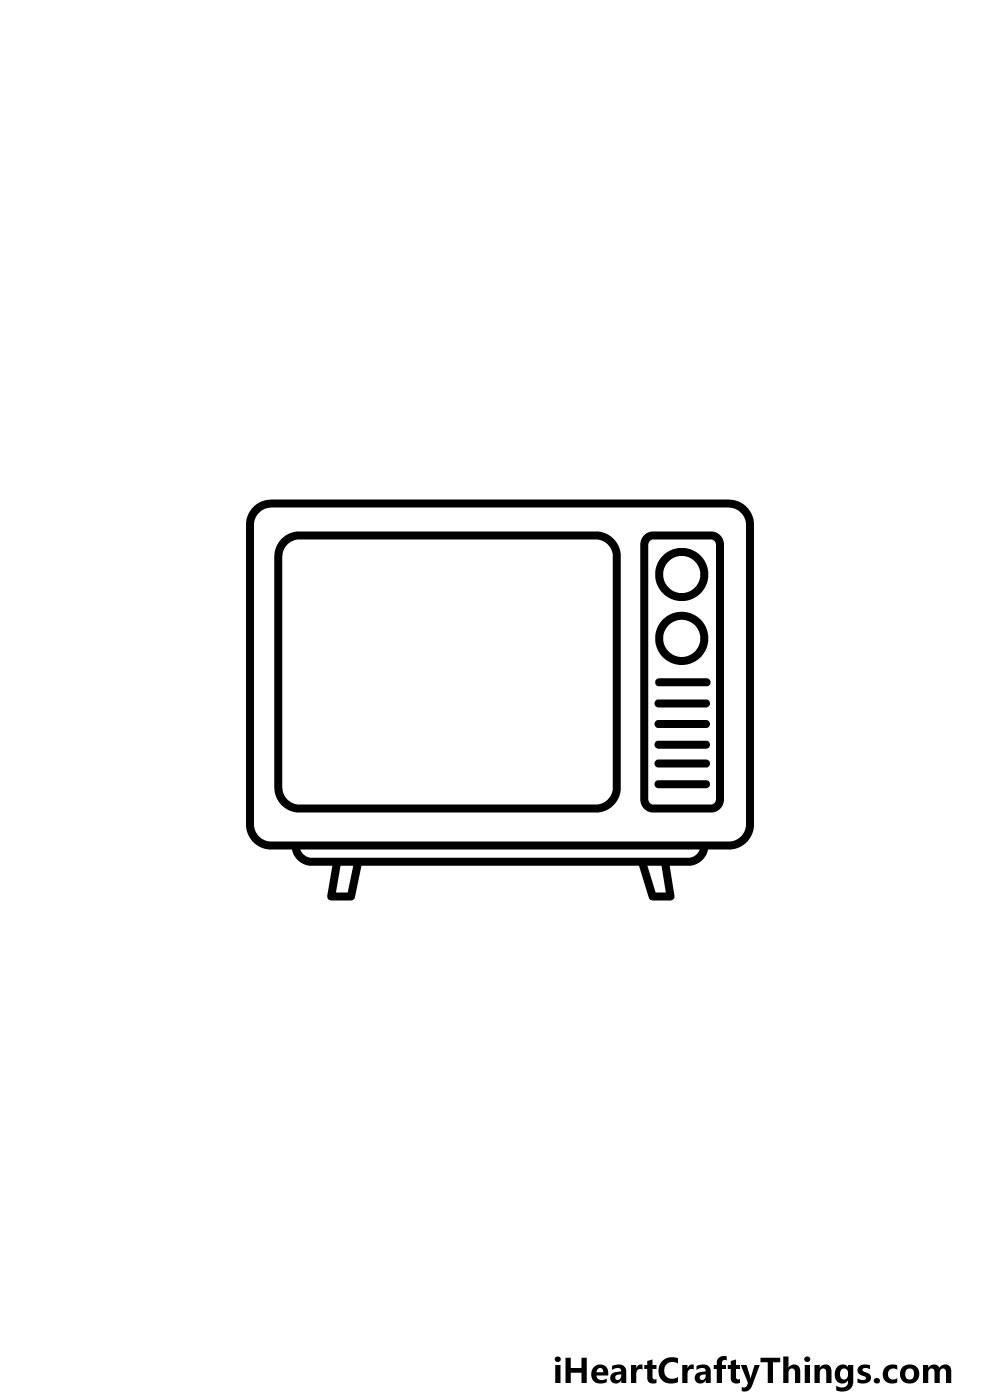 drawing a TV step 4